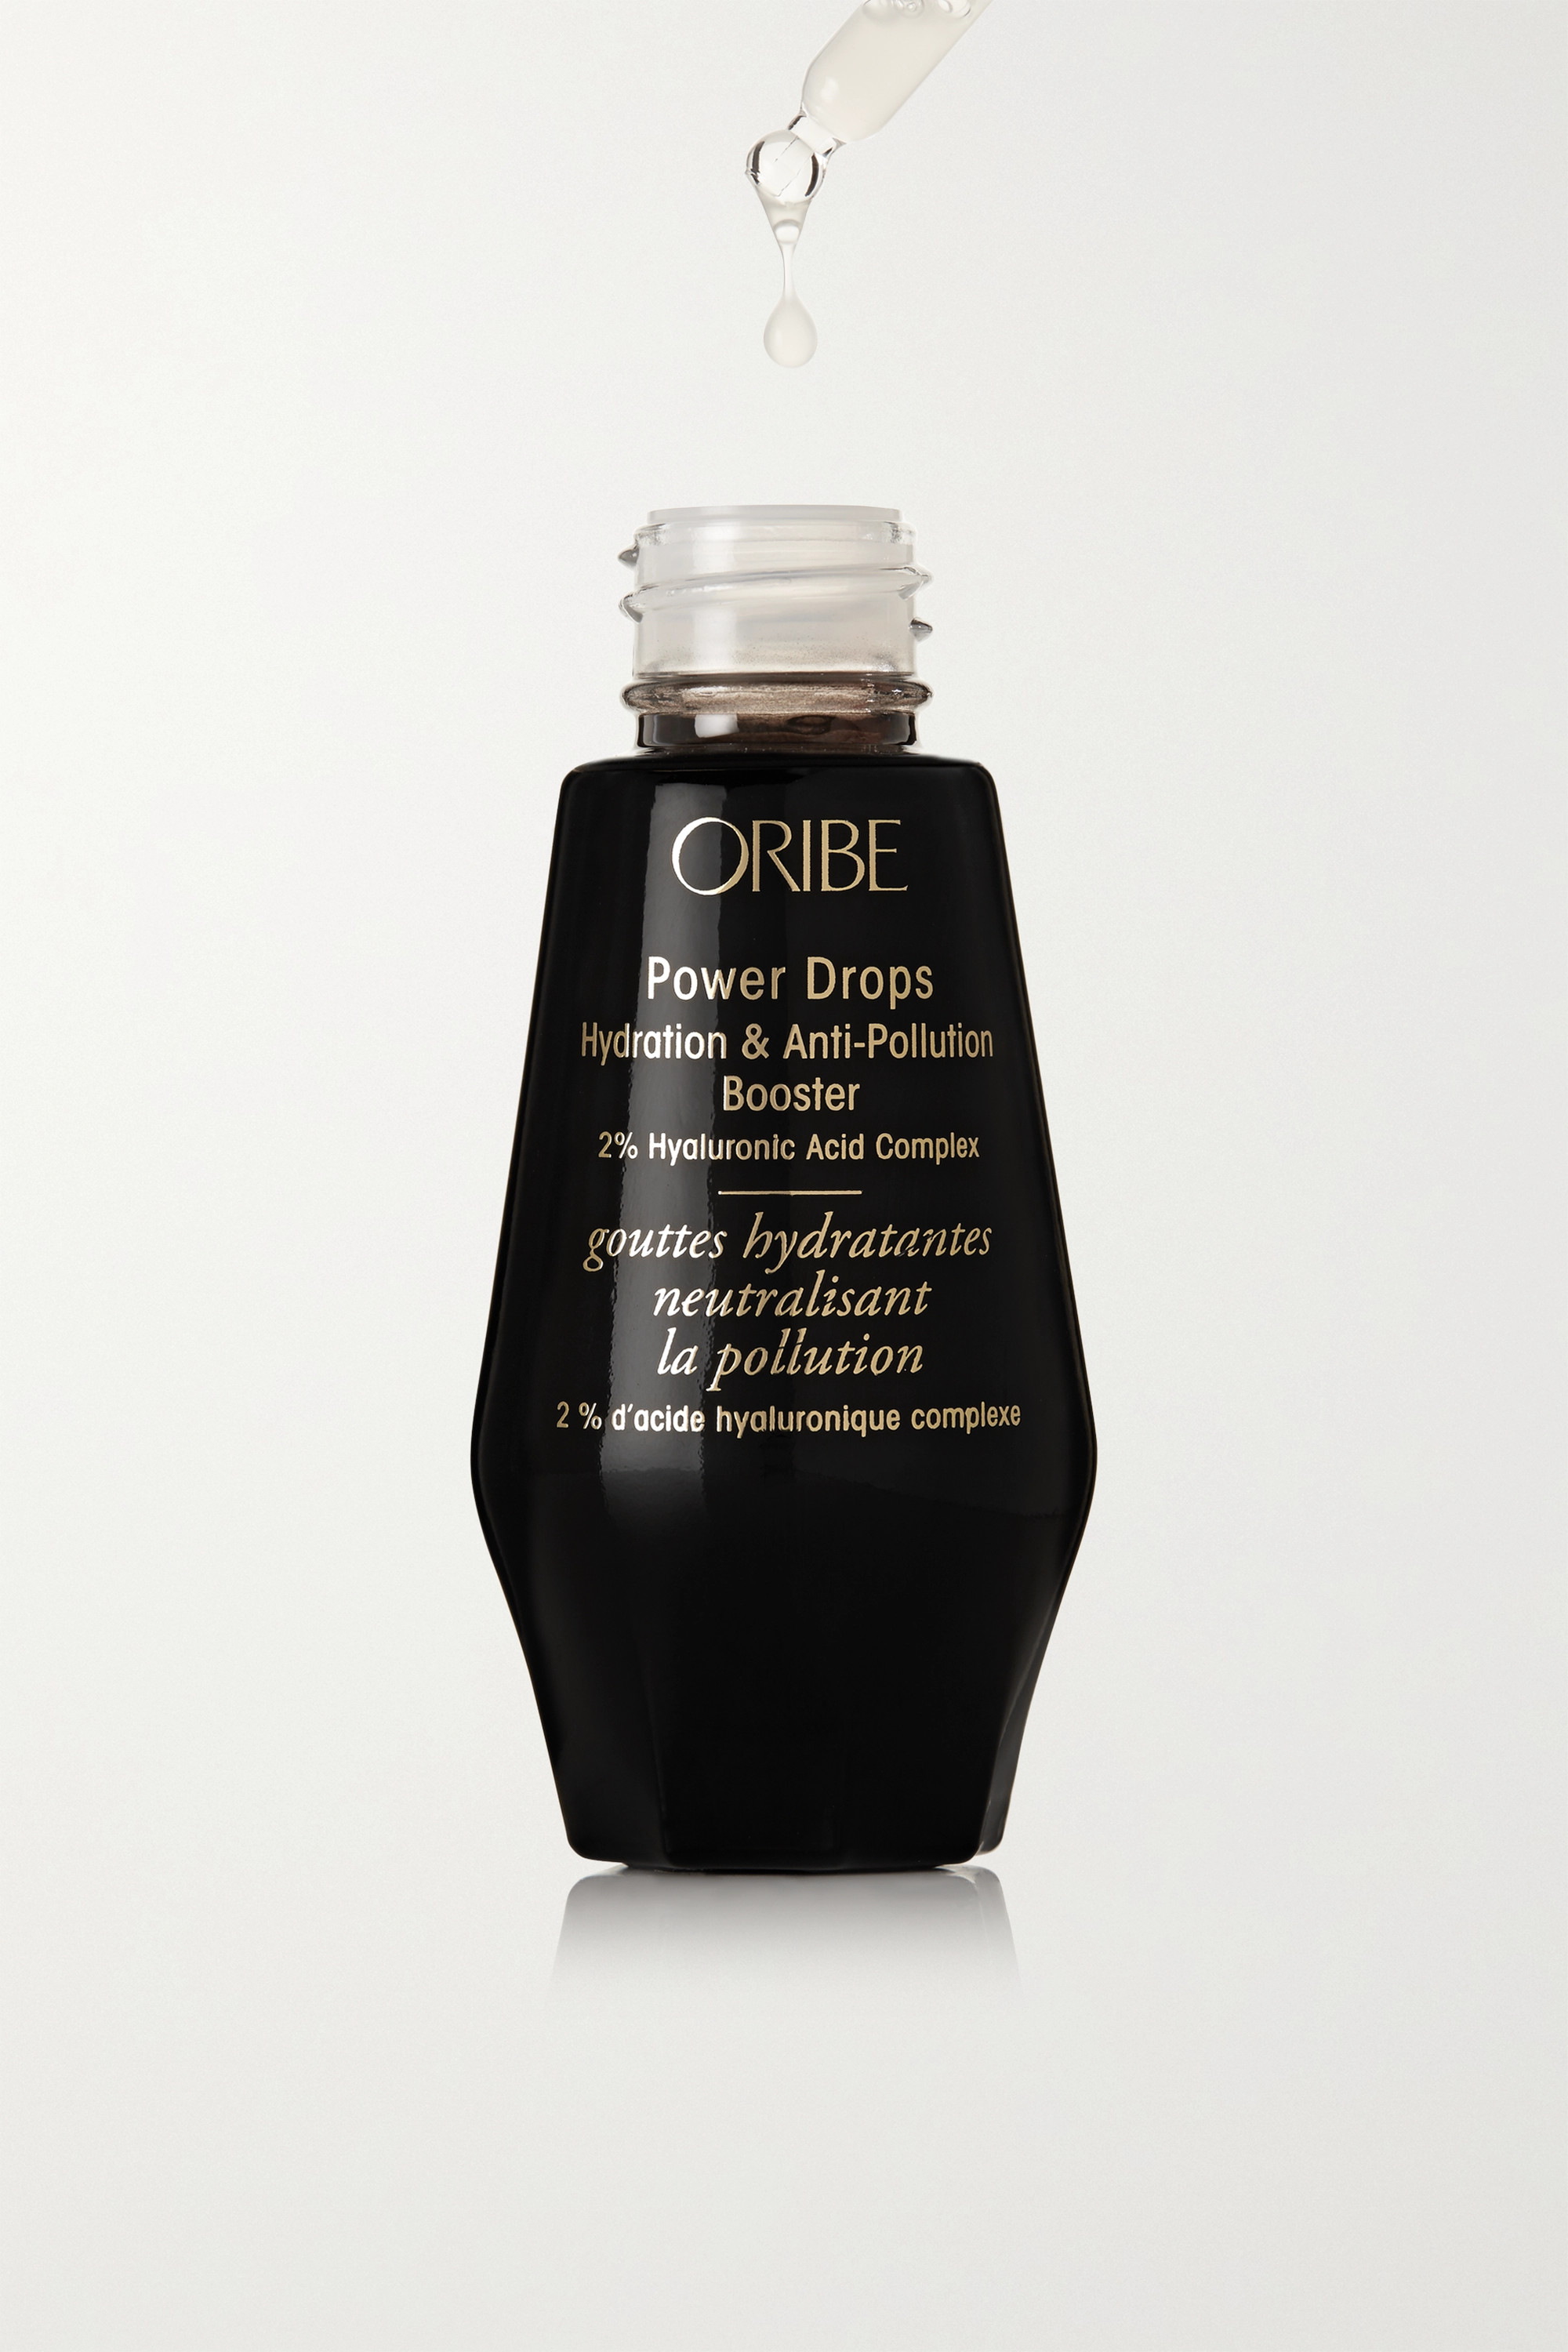 Oribe Power Drops Hydration & Anti-Pollution Booster, 30ml